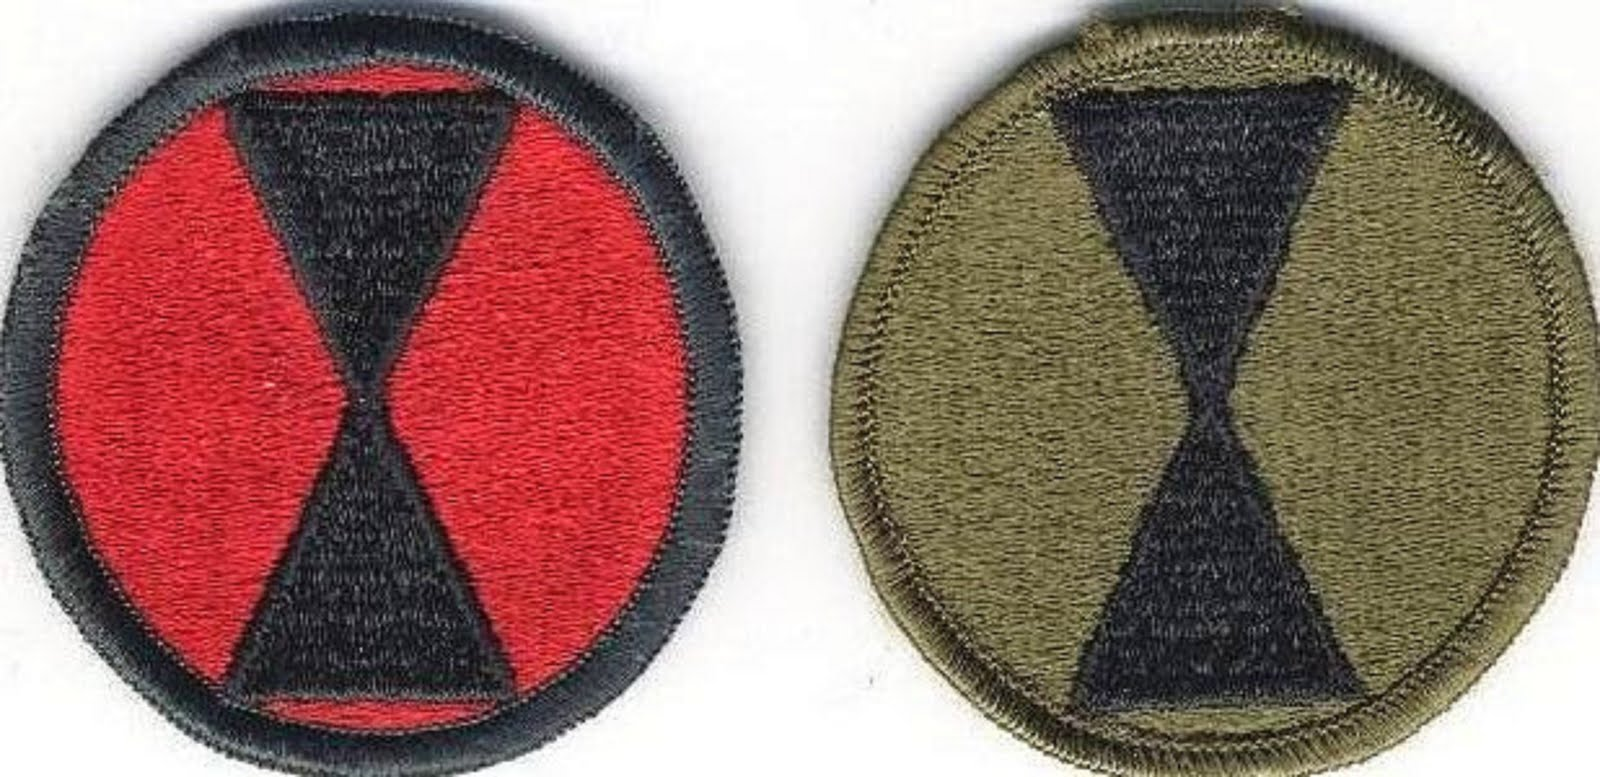 7th INFANTRY DIVISION (LIGHT) - COLORED AND CAMOUFLAGED